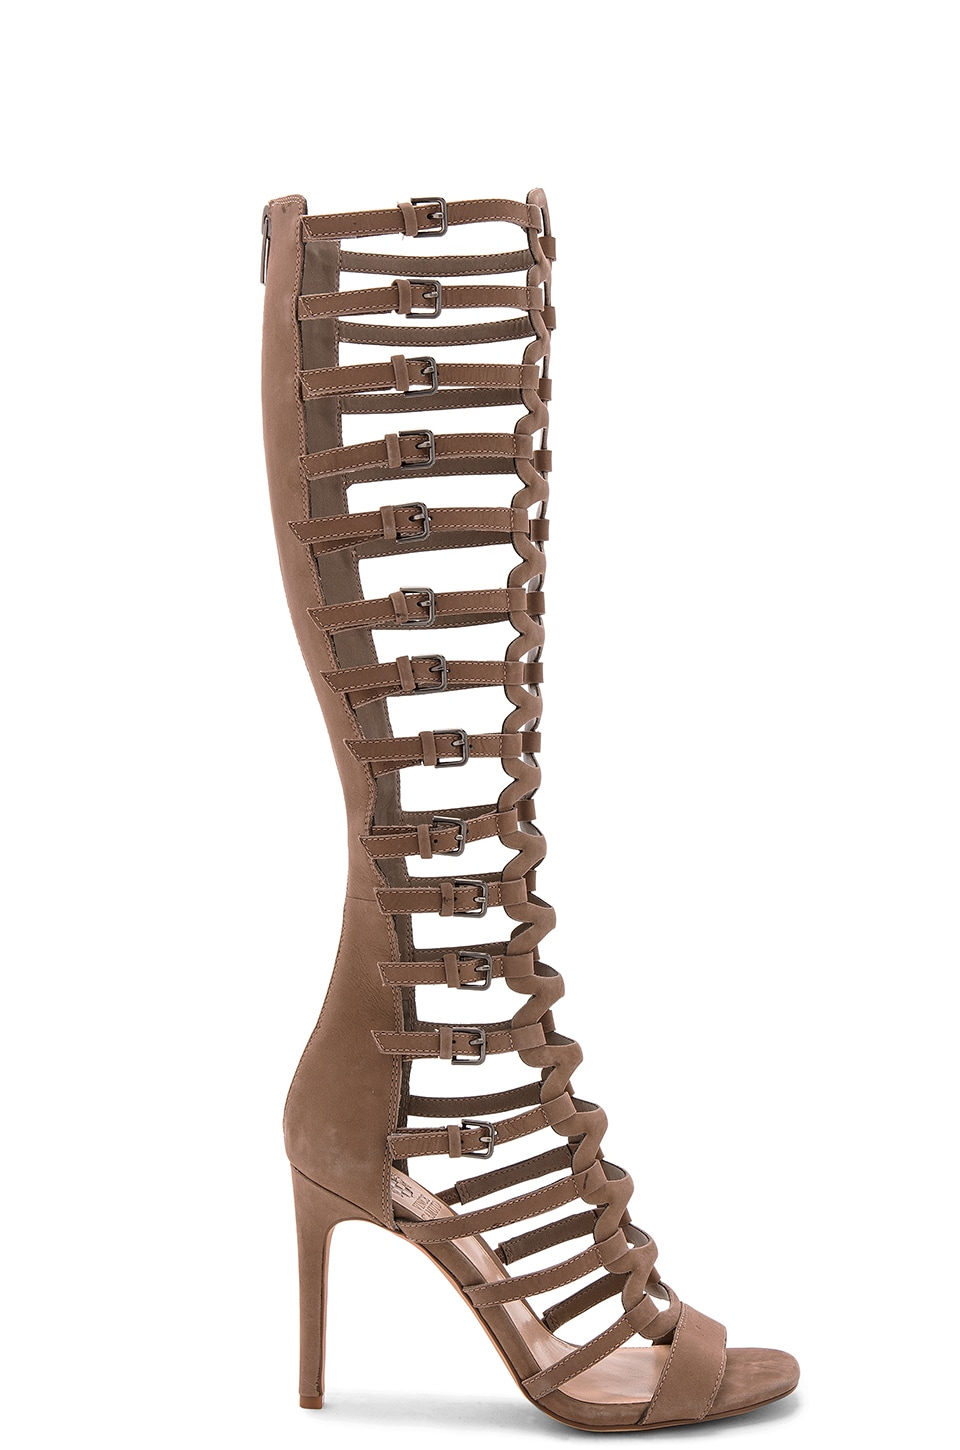 Chesta Gladiator by Vince Camuto